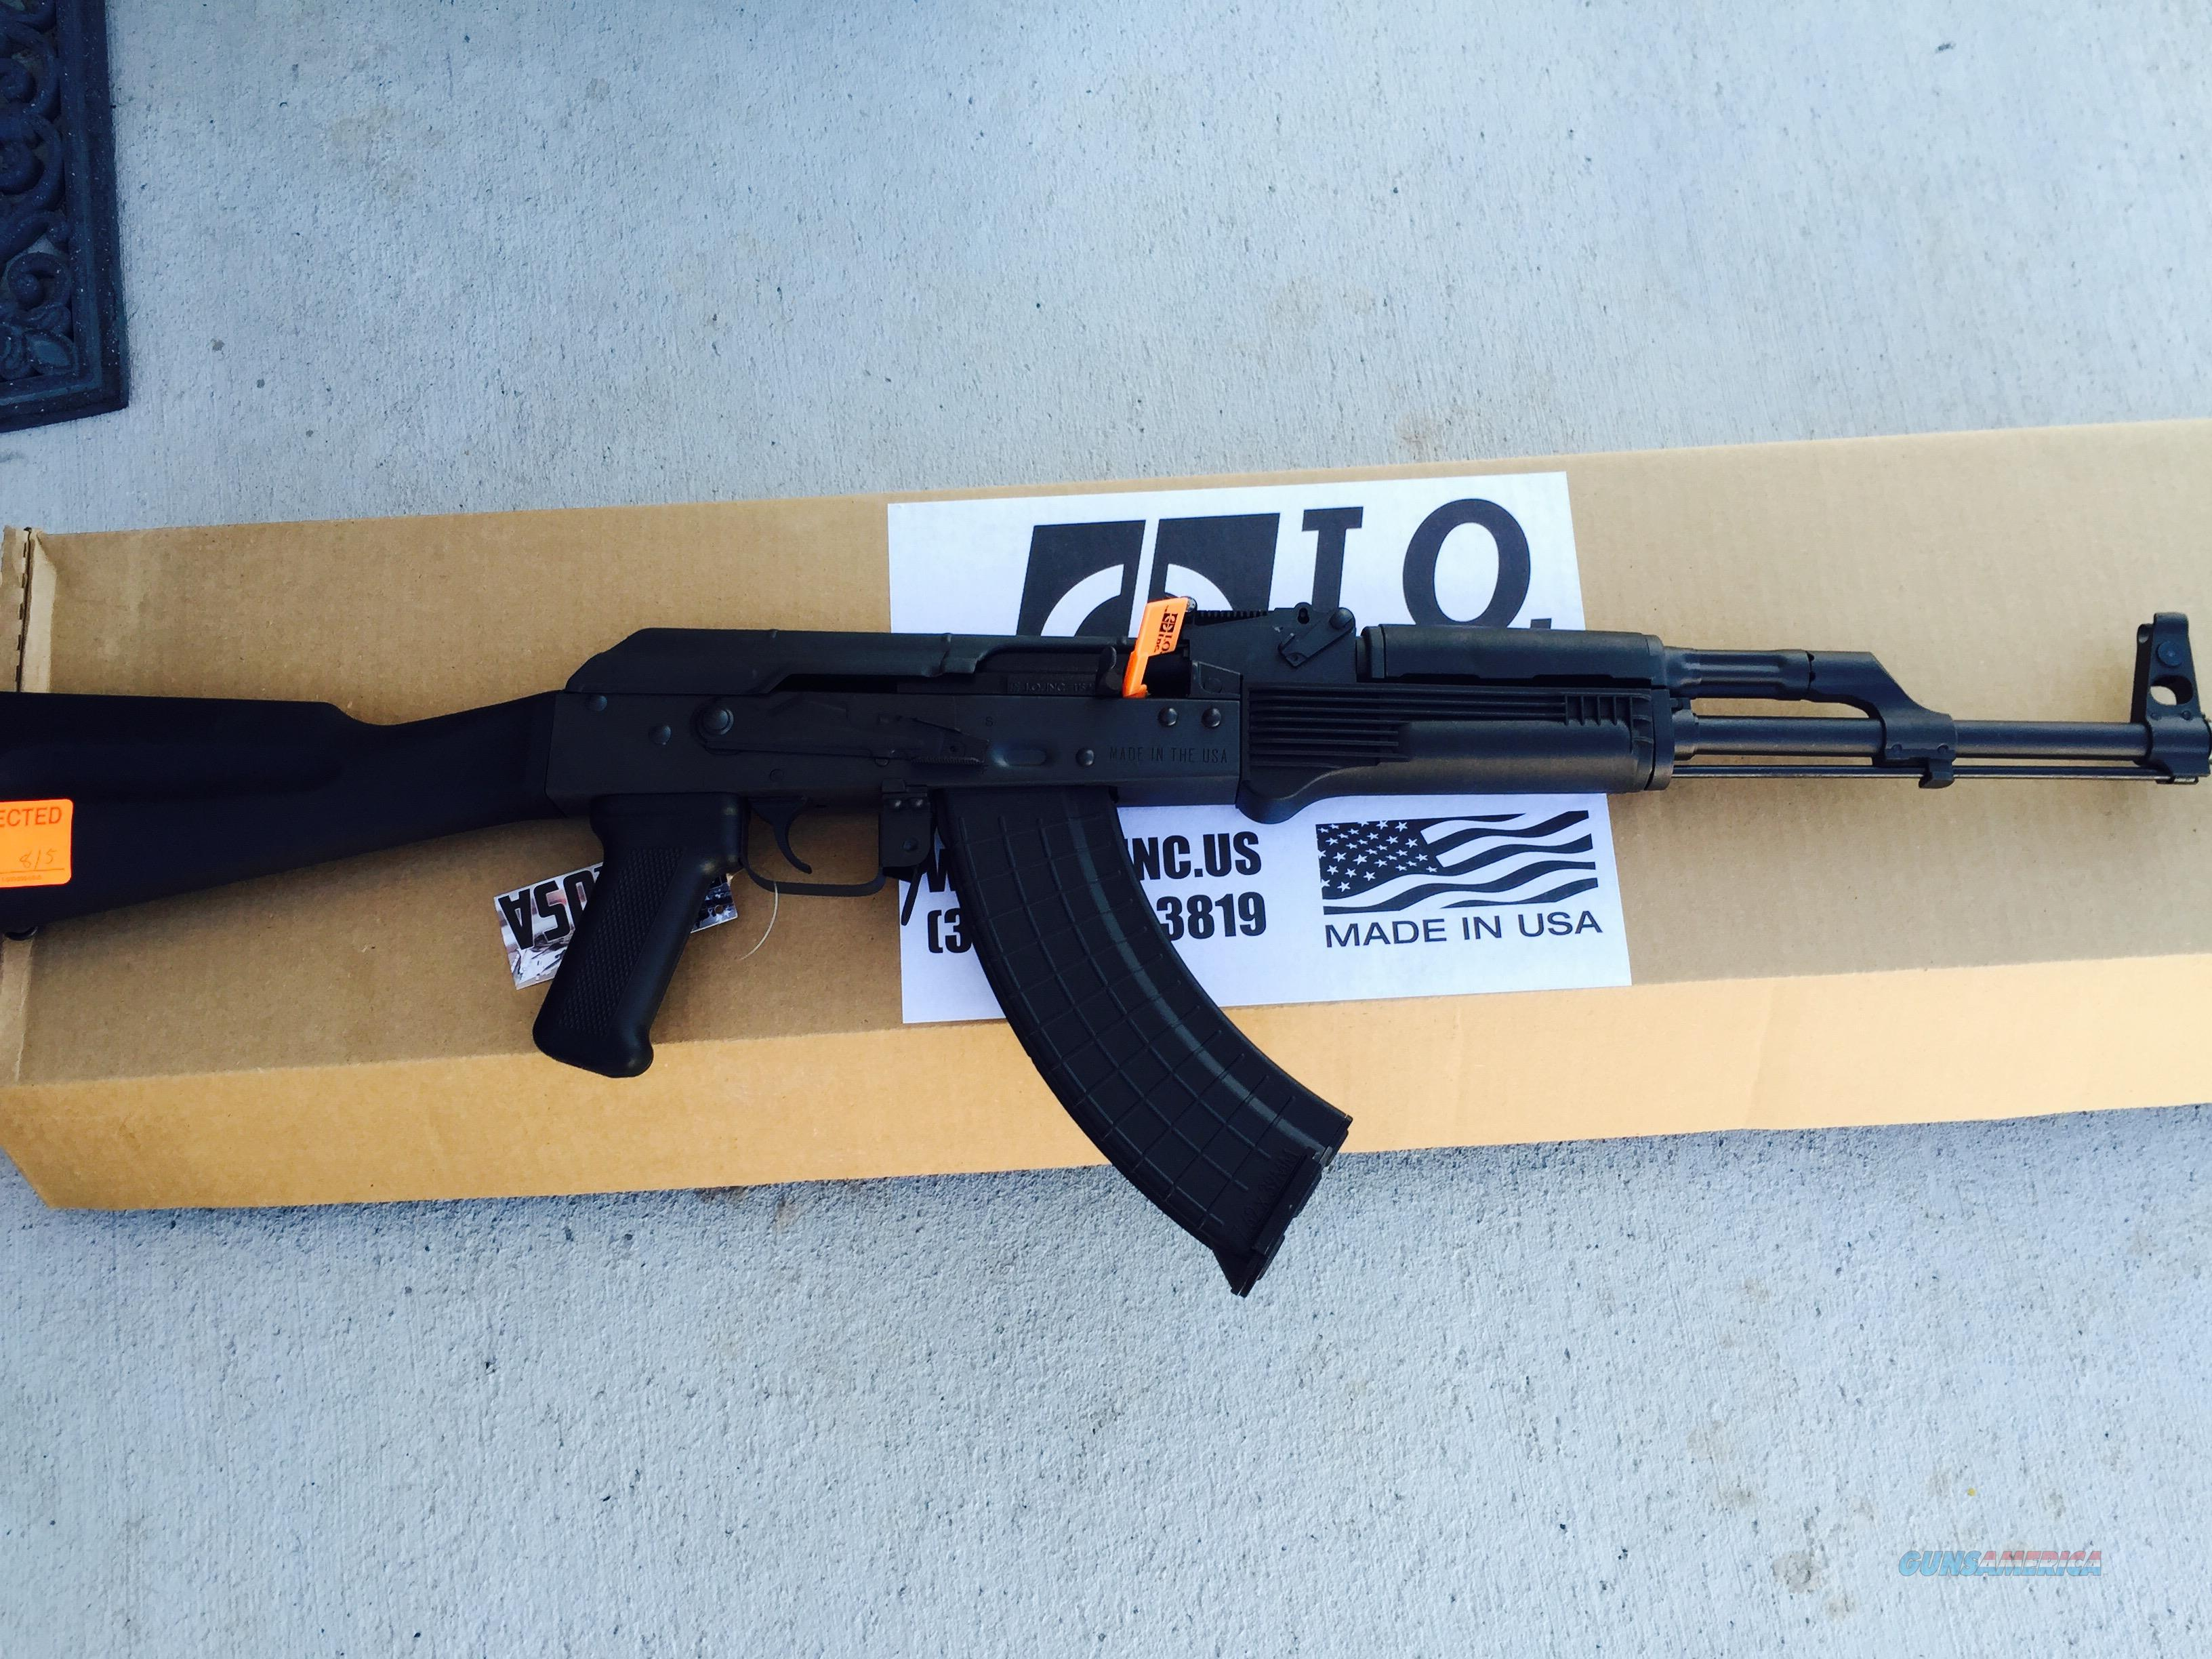 NEW I.O. Inc AK47 Inter Ordnance AKM47 7.62x39 semi auto rifle  Guns > Rifles > IJ Misc Rifles